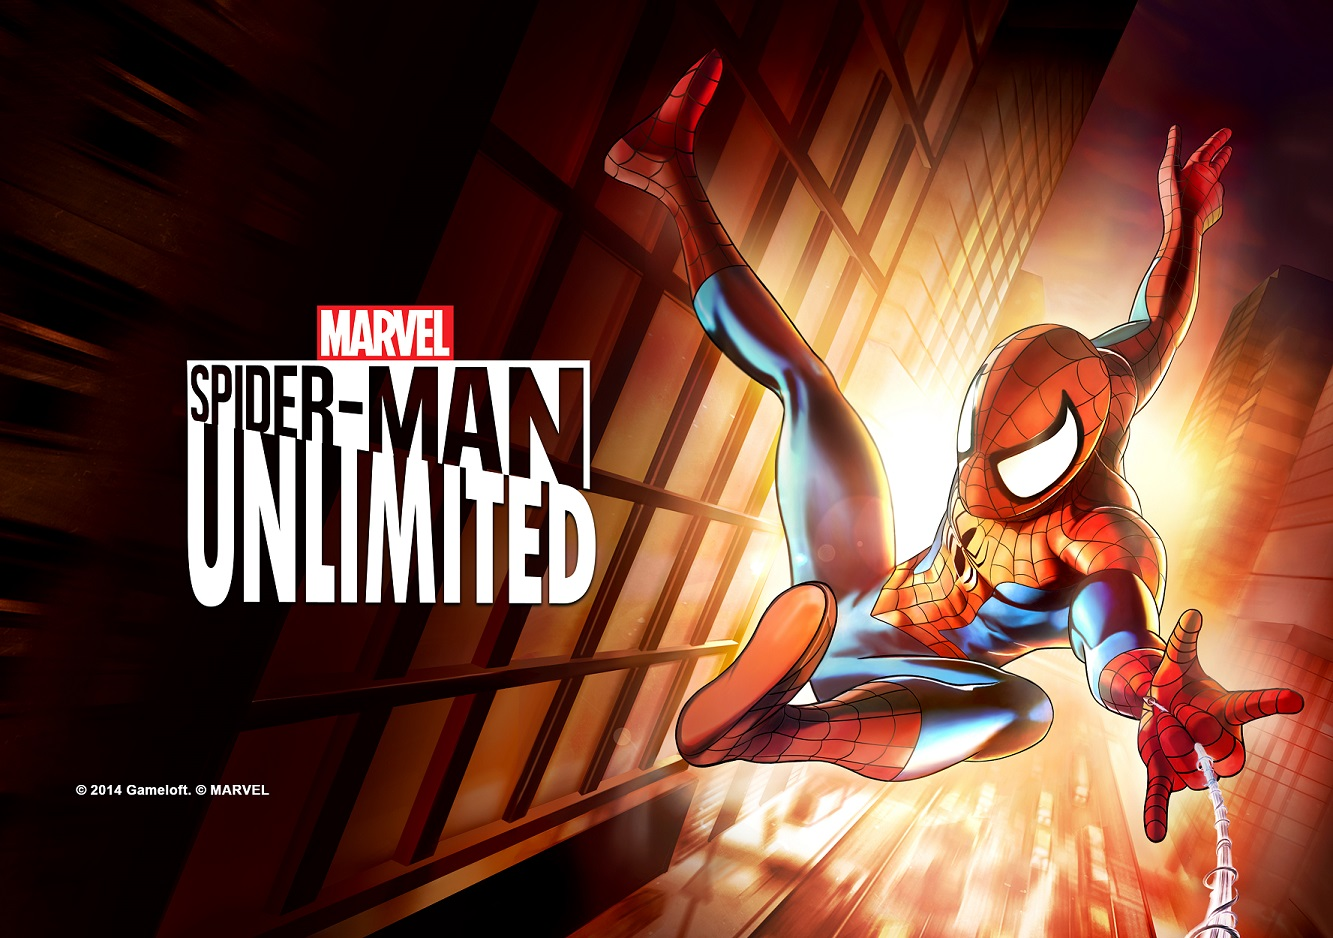 Spider Man Image Download: Free Download Spider-Man Unlimited Game Apps For Laptop